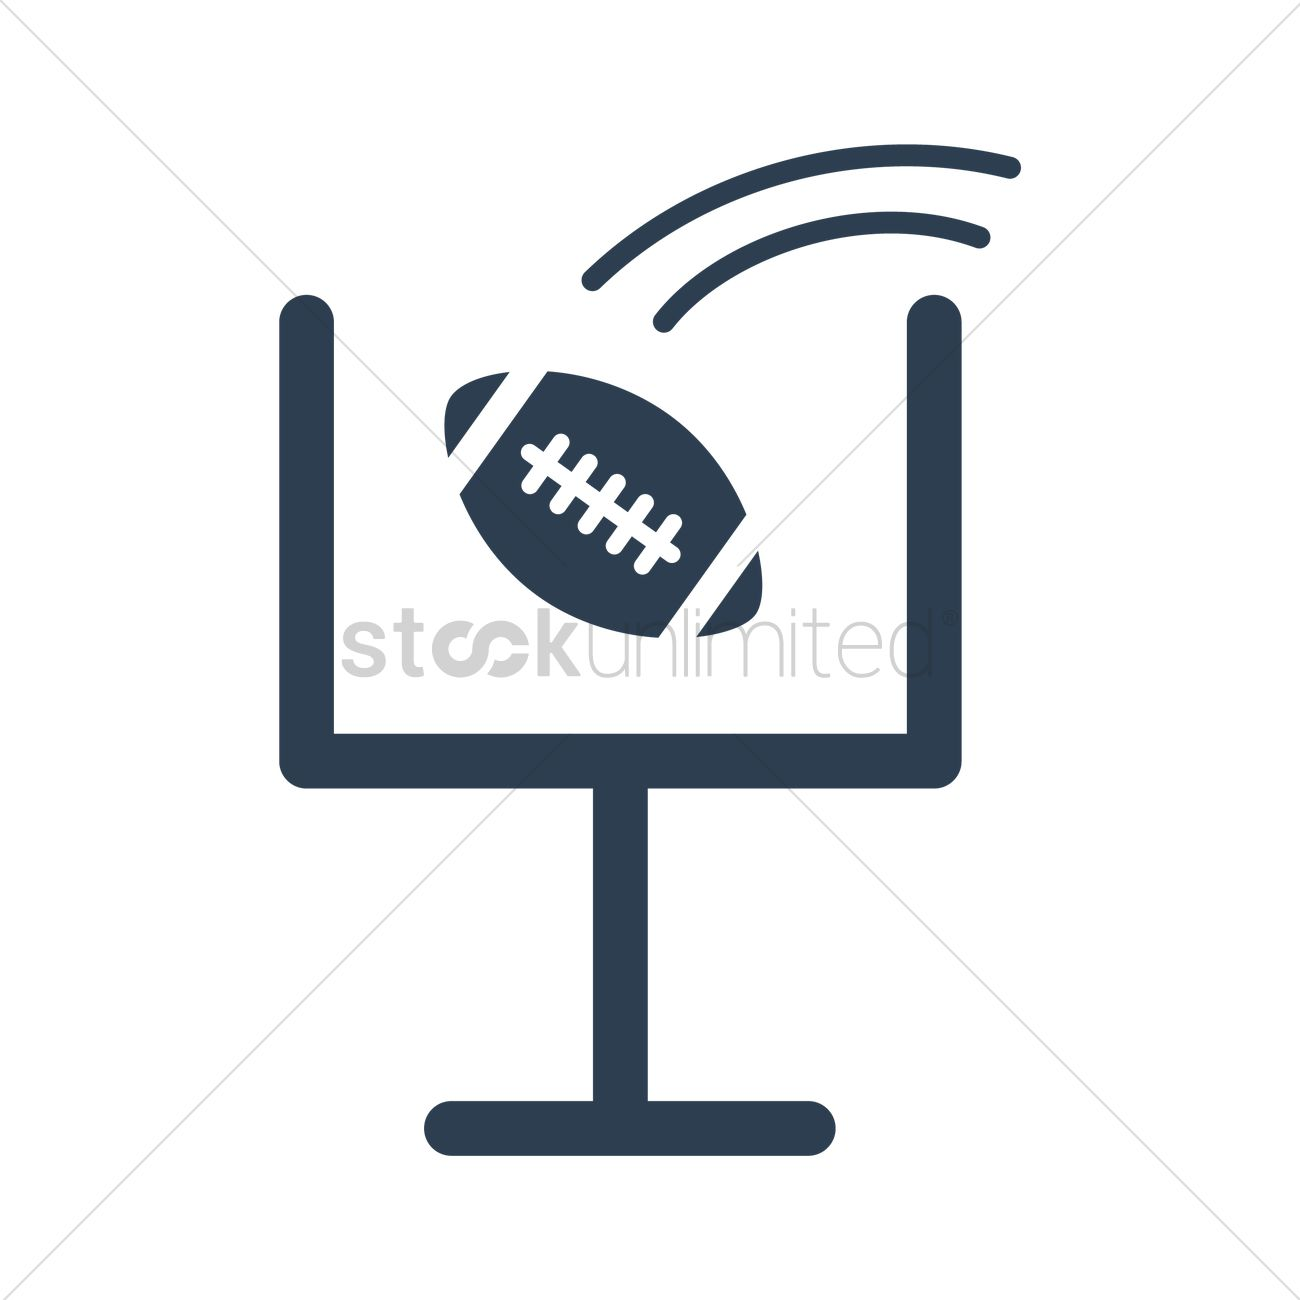 American Football Goal Post Icon Vector Image 1984911 Stockunlimited